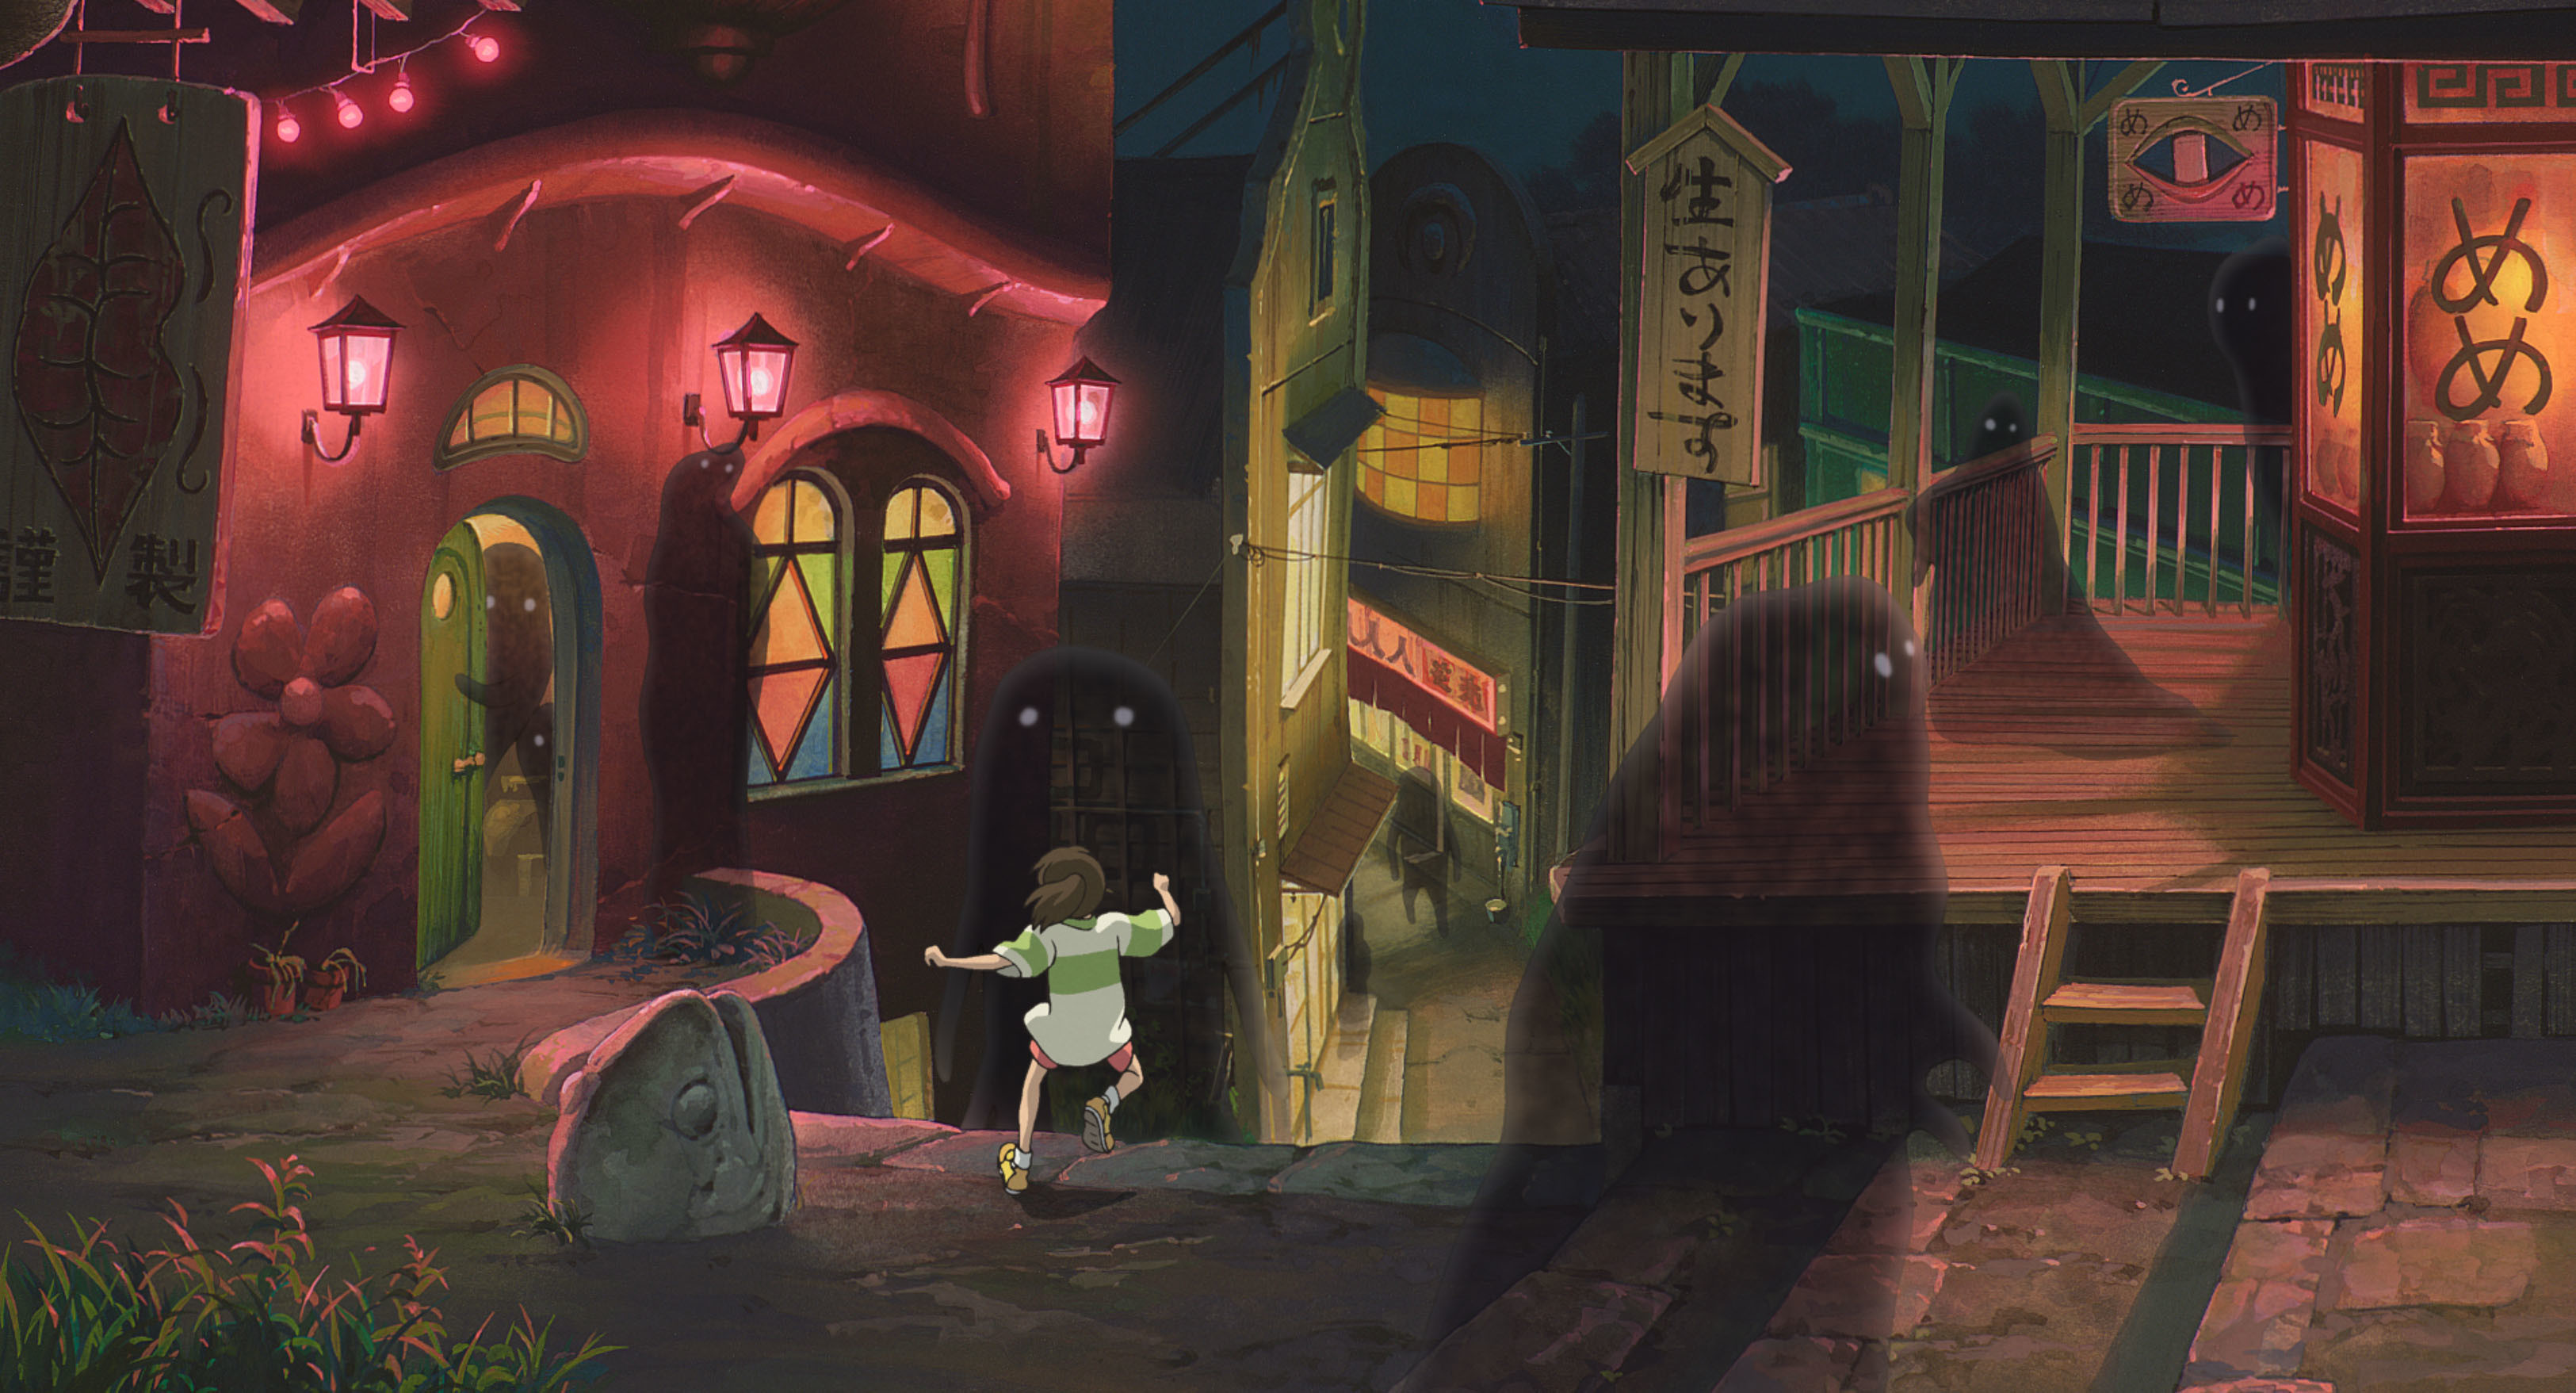 15 Chihiro (Spirited Away) HD Wallpapers | Backgrounds – Wallpaper Abyss